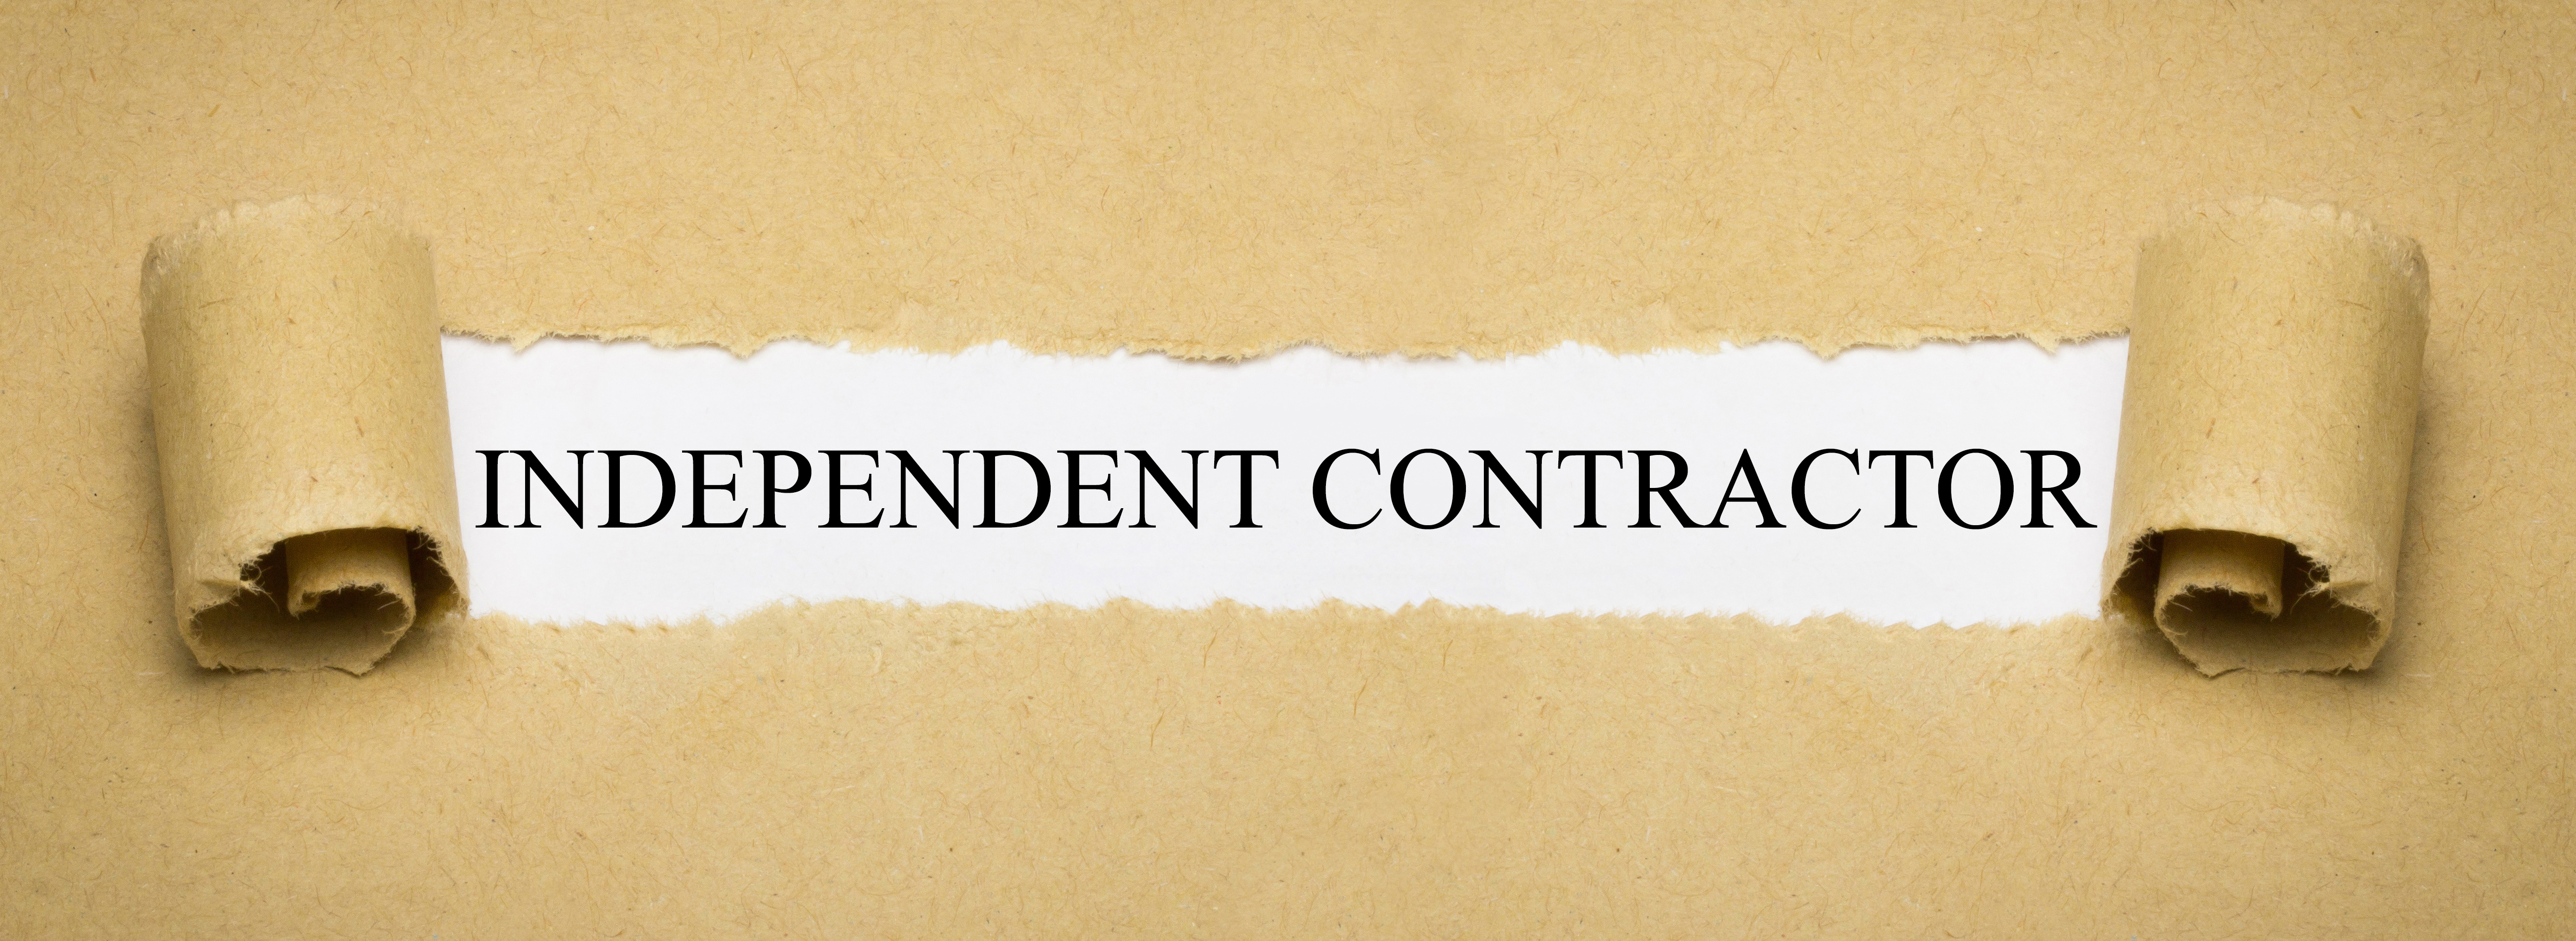 Independent Contractor written on a whitepaper after peeled off brown paper